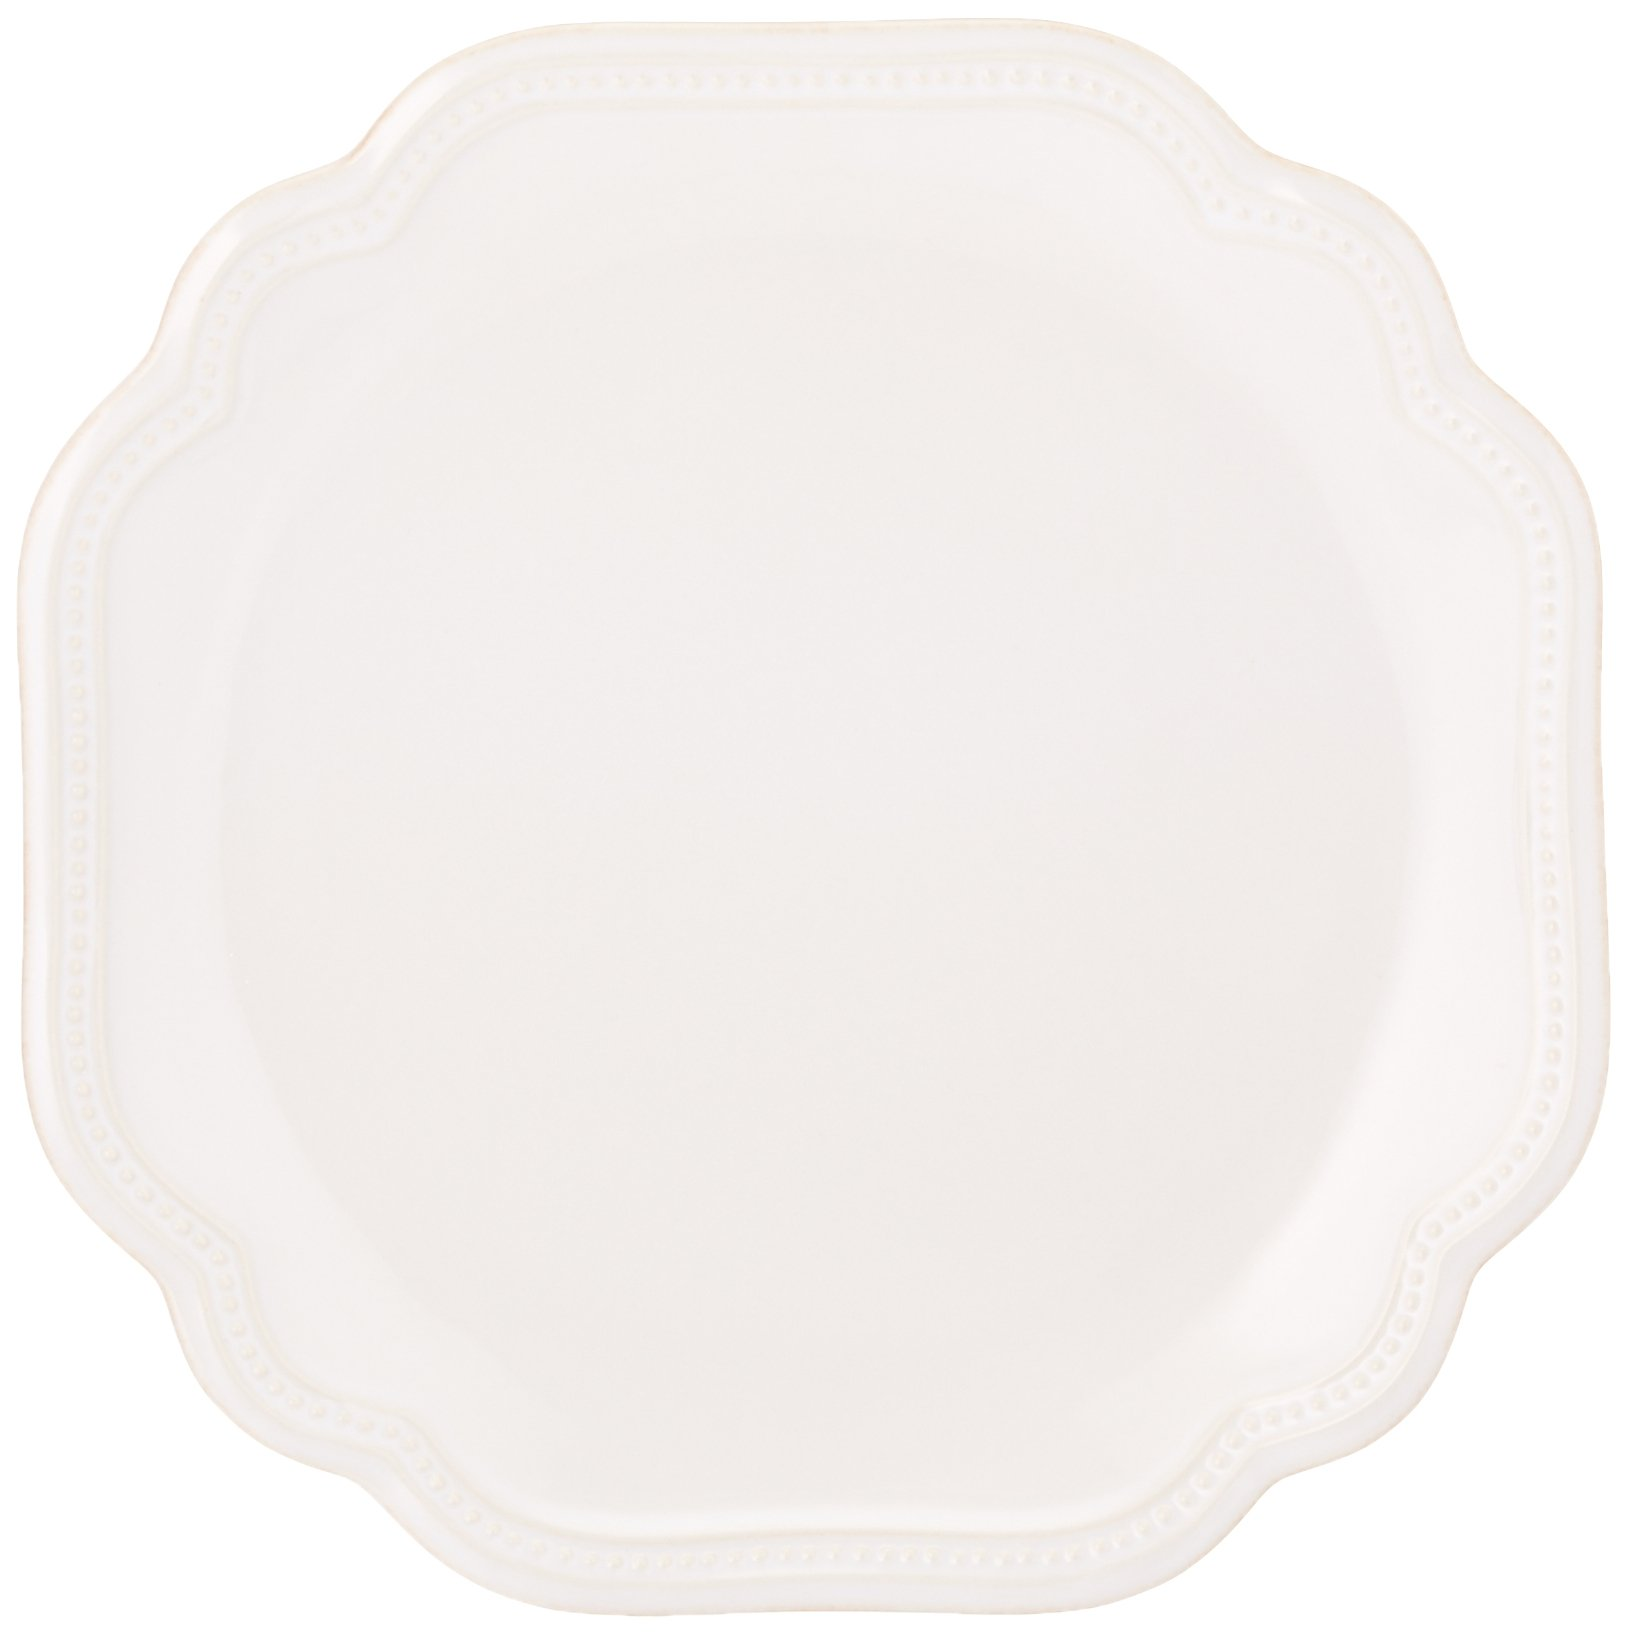 Lenox 4-Piece French Perle Bead Dinner Set, White by Lenox (Image #4)